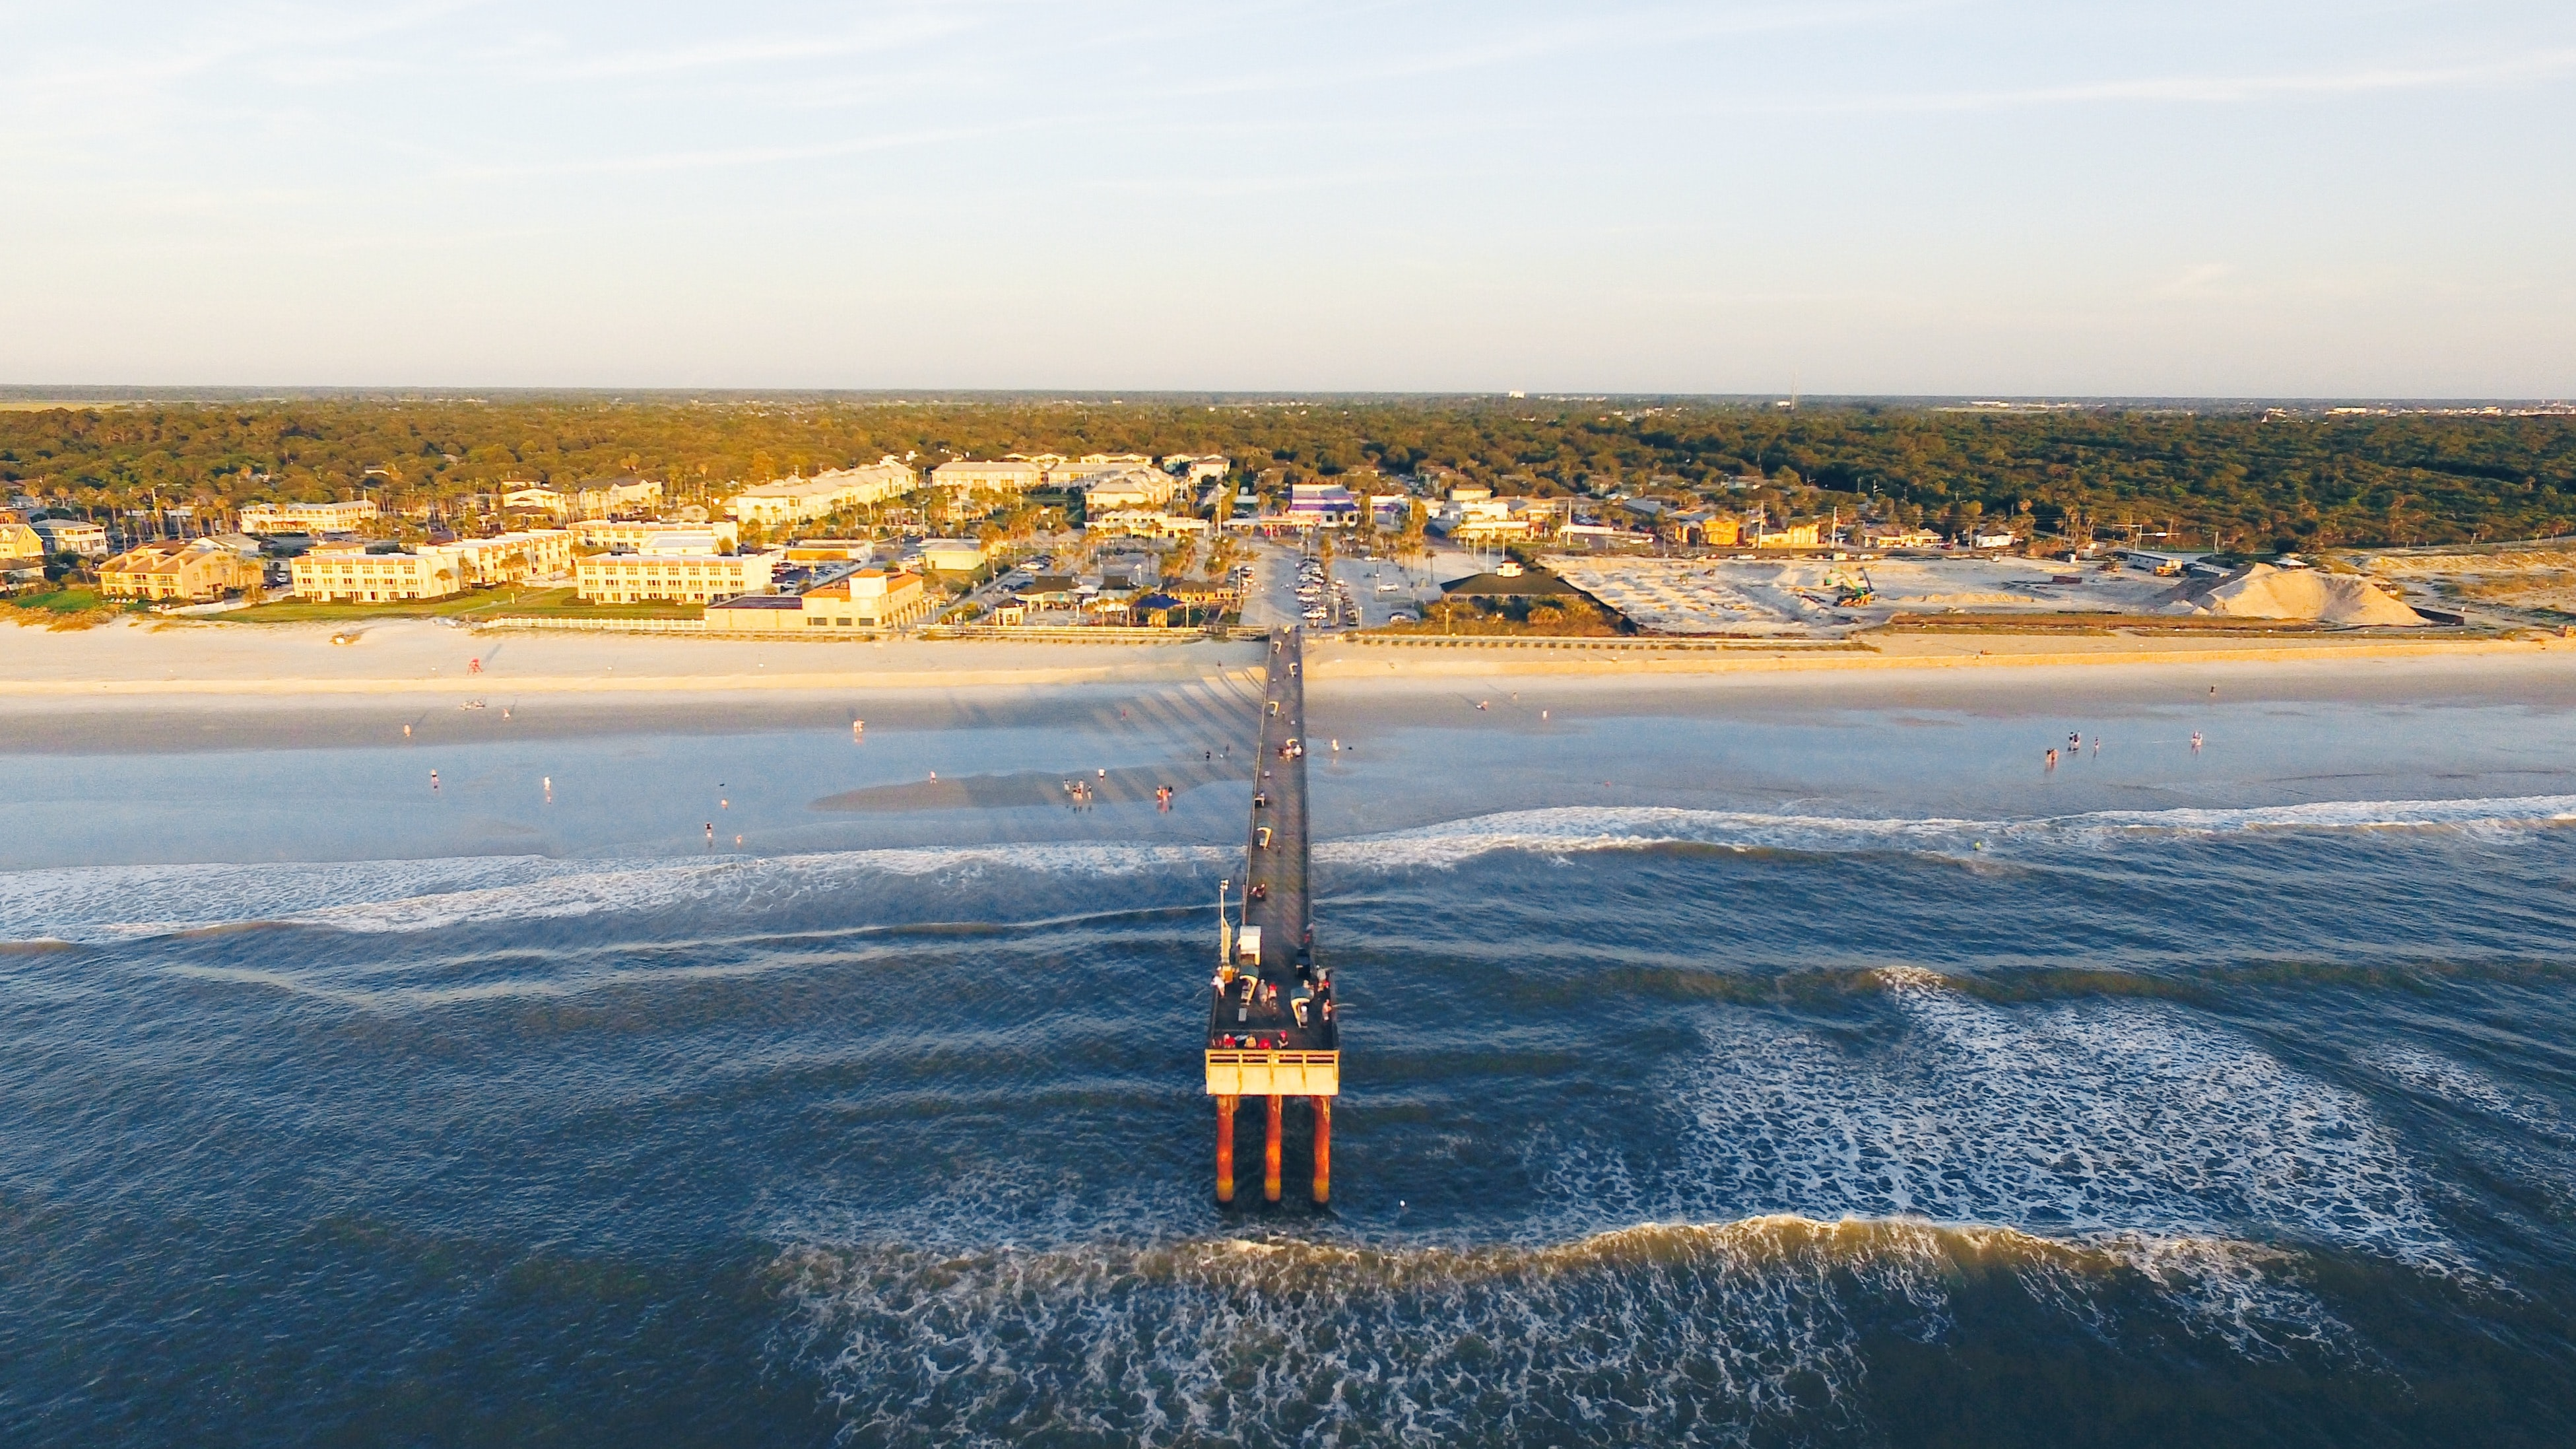 Drone view of an ocean pier in the coastal town of St. Augustine, Florida.